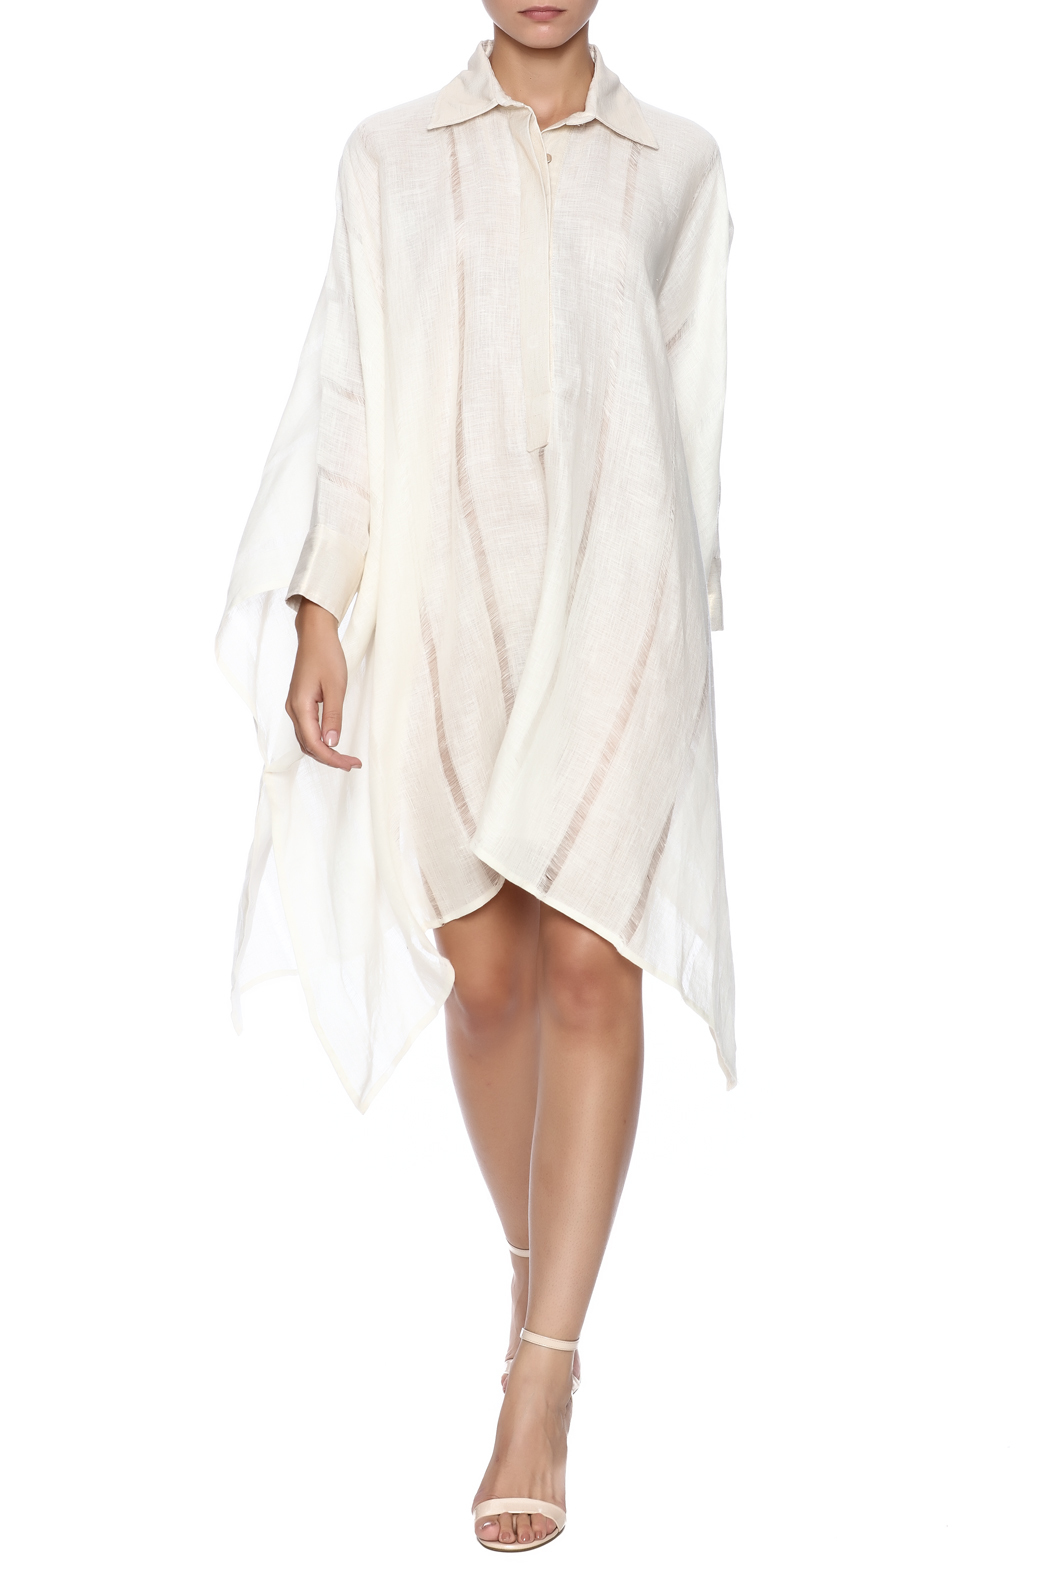 Royal Jelly Harlem Ivory Stripe Shirt Dress - Main Image